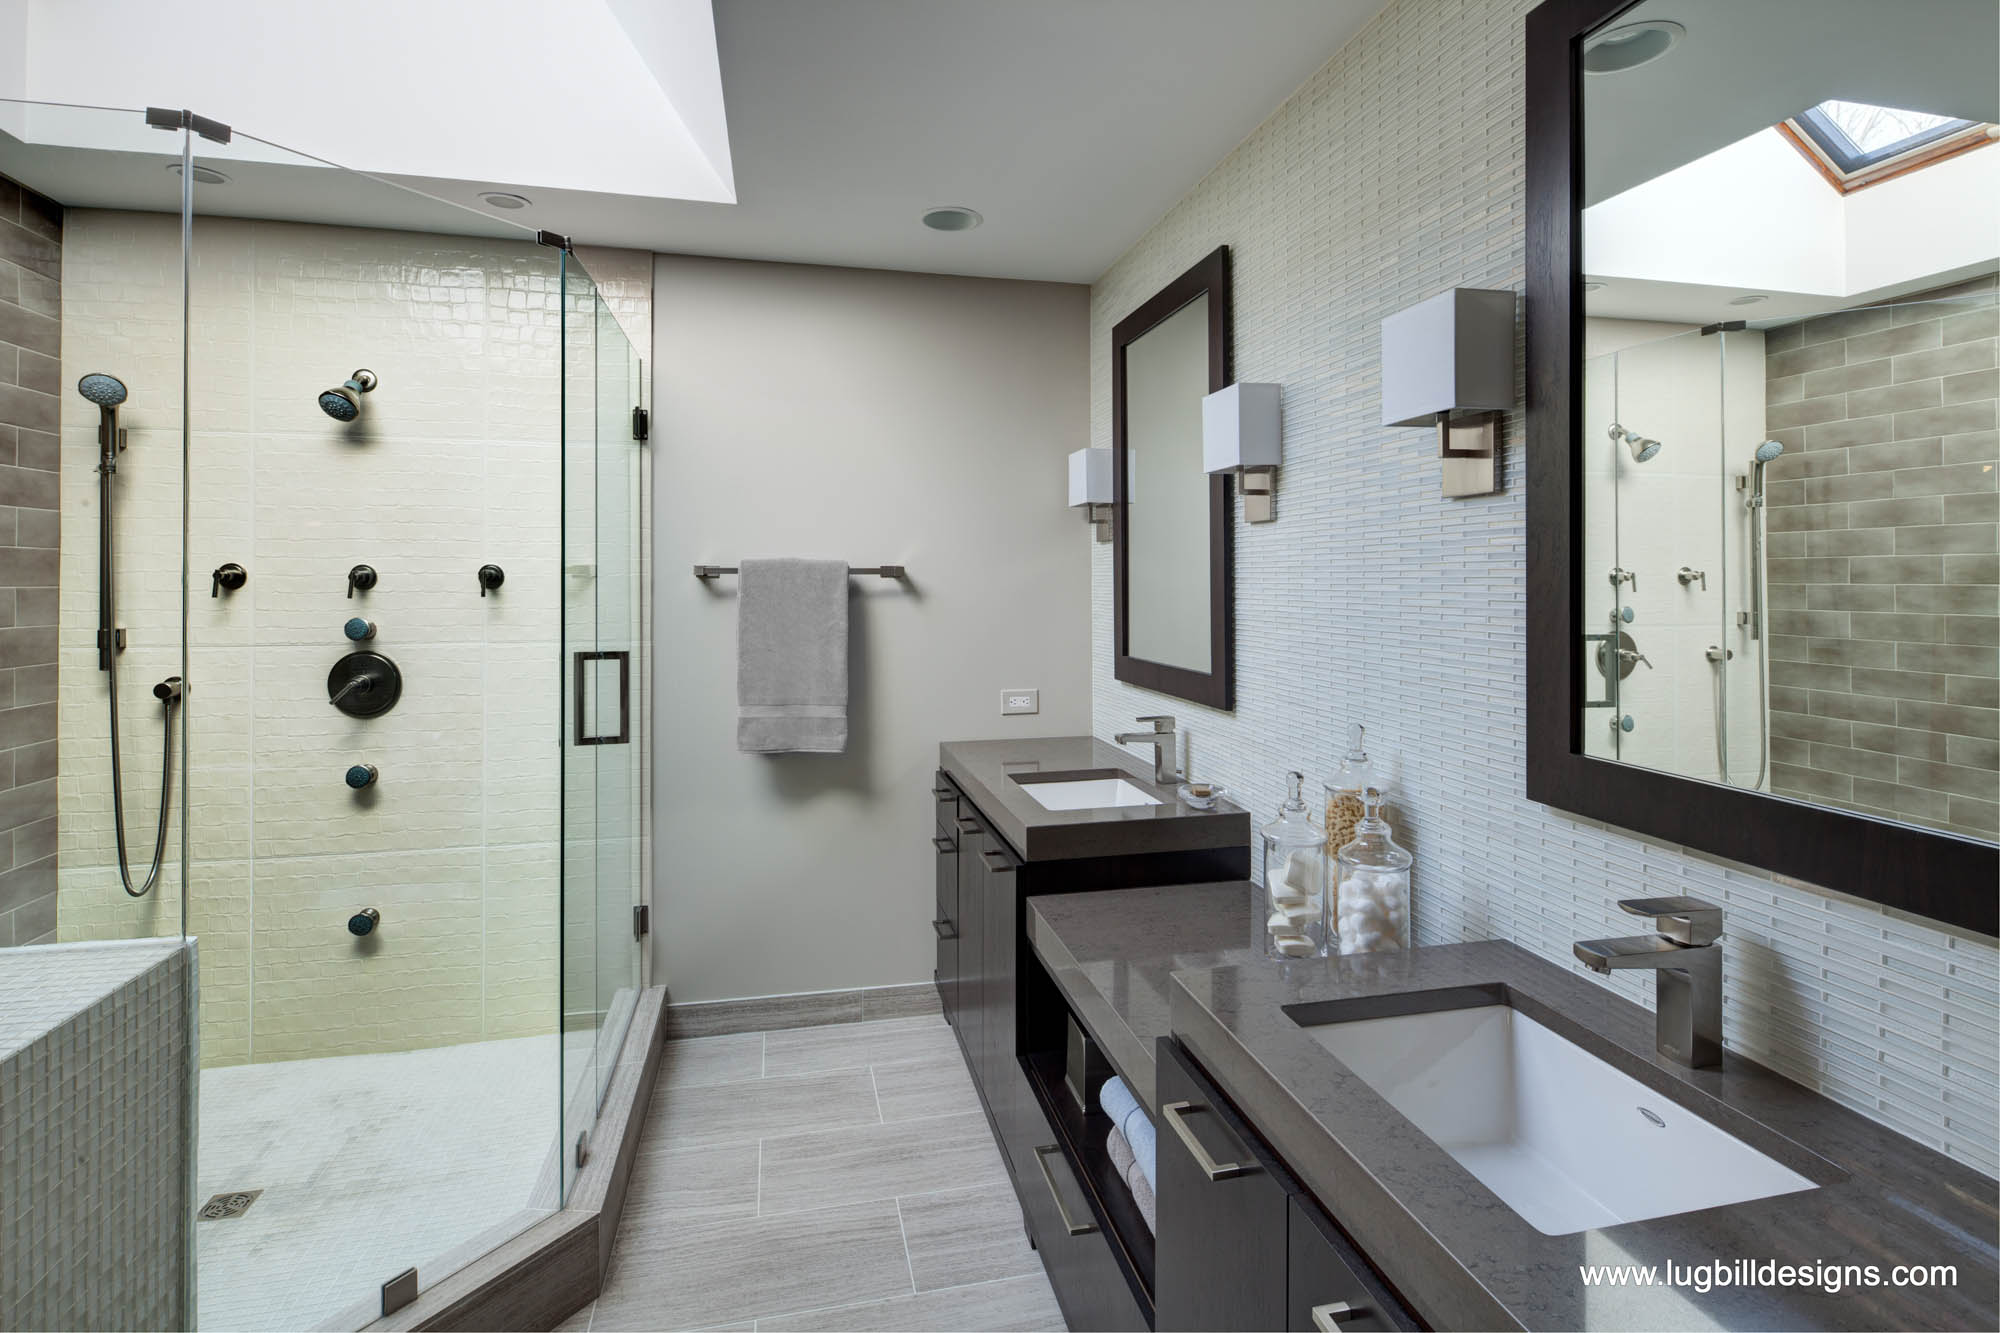 Bathroom remodel spotlight the headland project one week bath - Share Bathrooms By Design